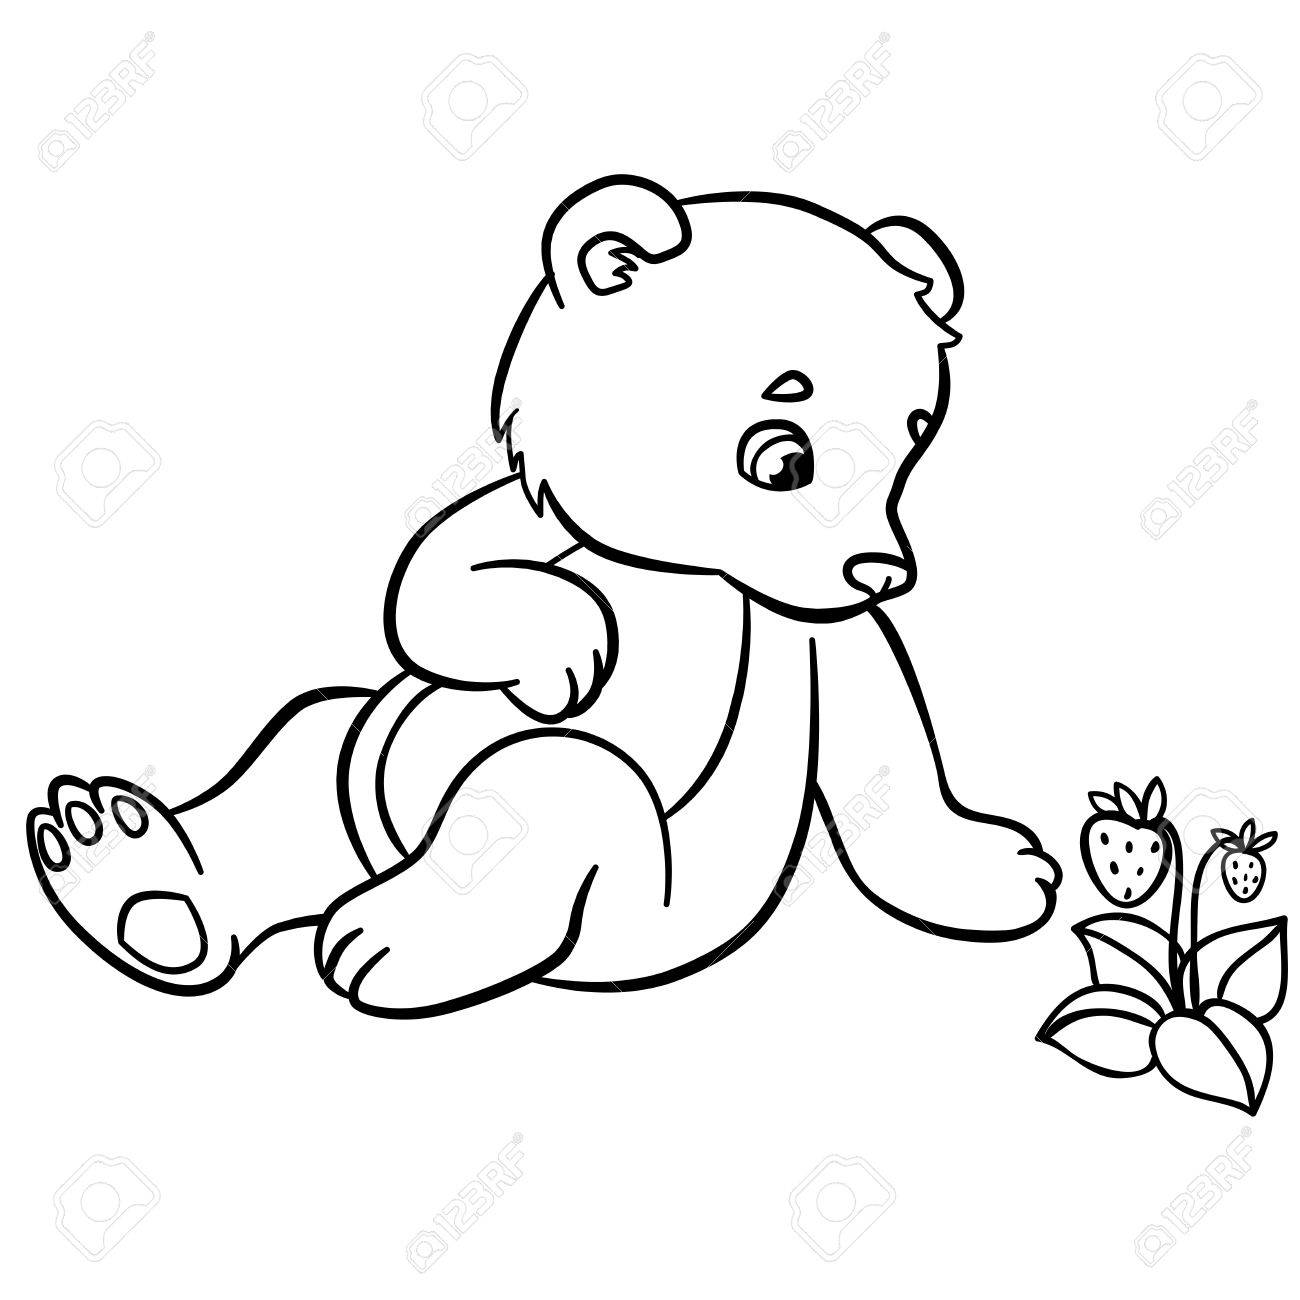 1300x1300 Coloring Pages. Wild Animals. Little Cute Baby Bear Looks